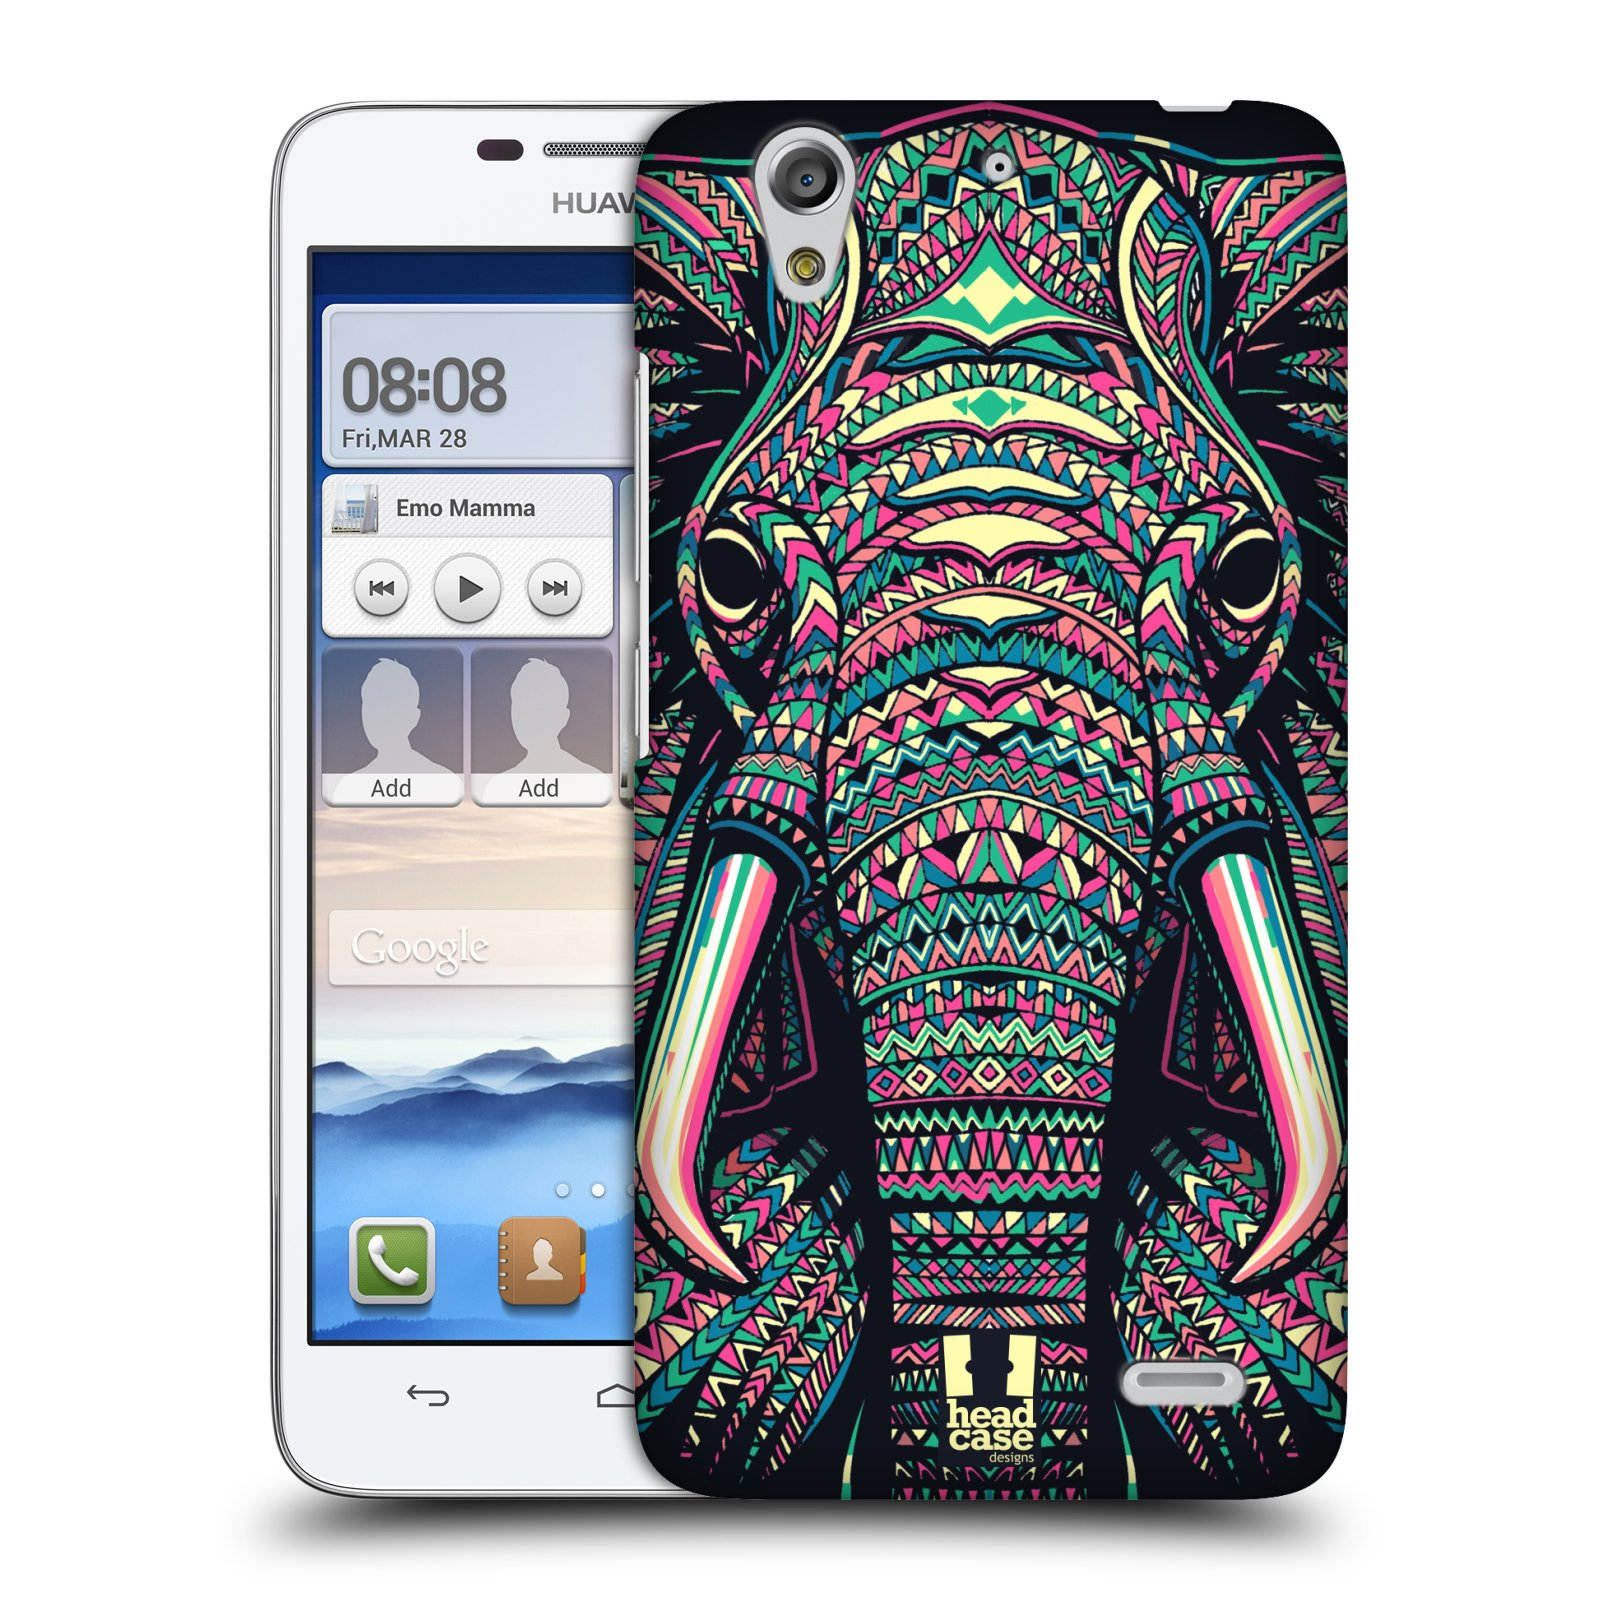 HEAD CASE DESIGNS AZTEC ANIMAL FACES SERIES 2 CASE COVER FOR HUAWEI ASCEND G630